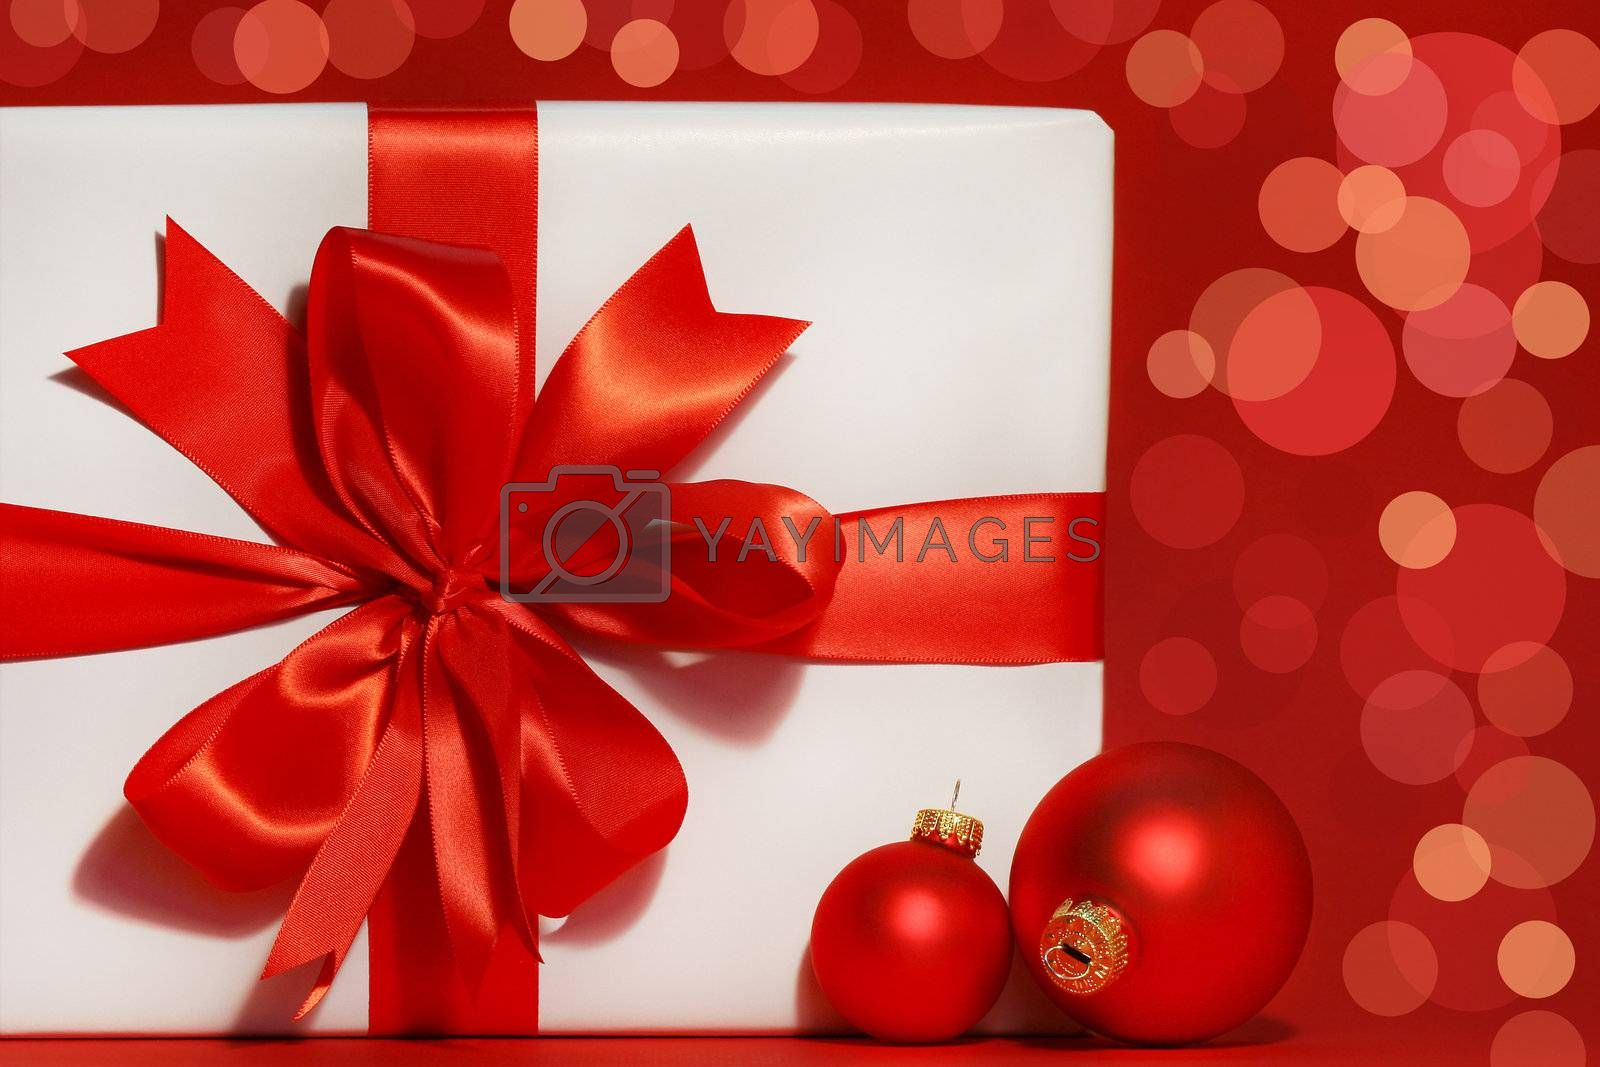 Big red bow on gift with red background and christmas balls